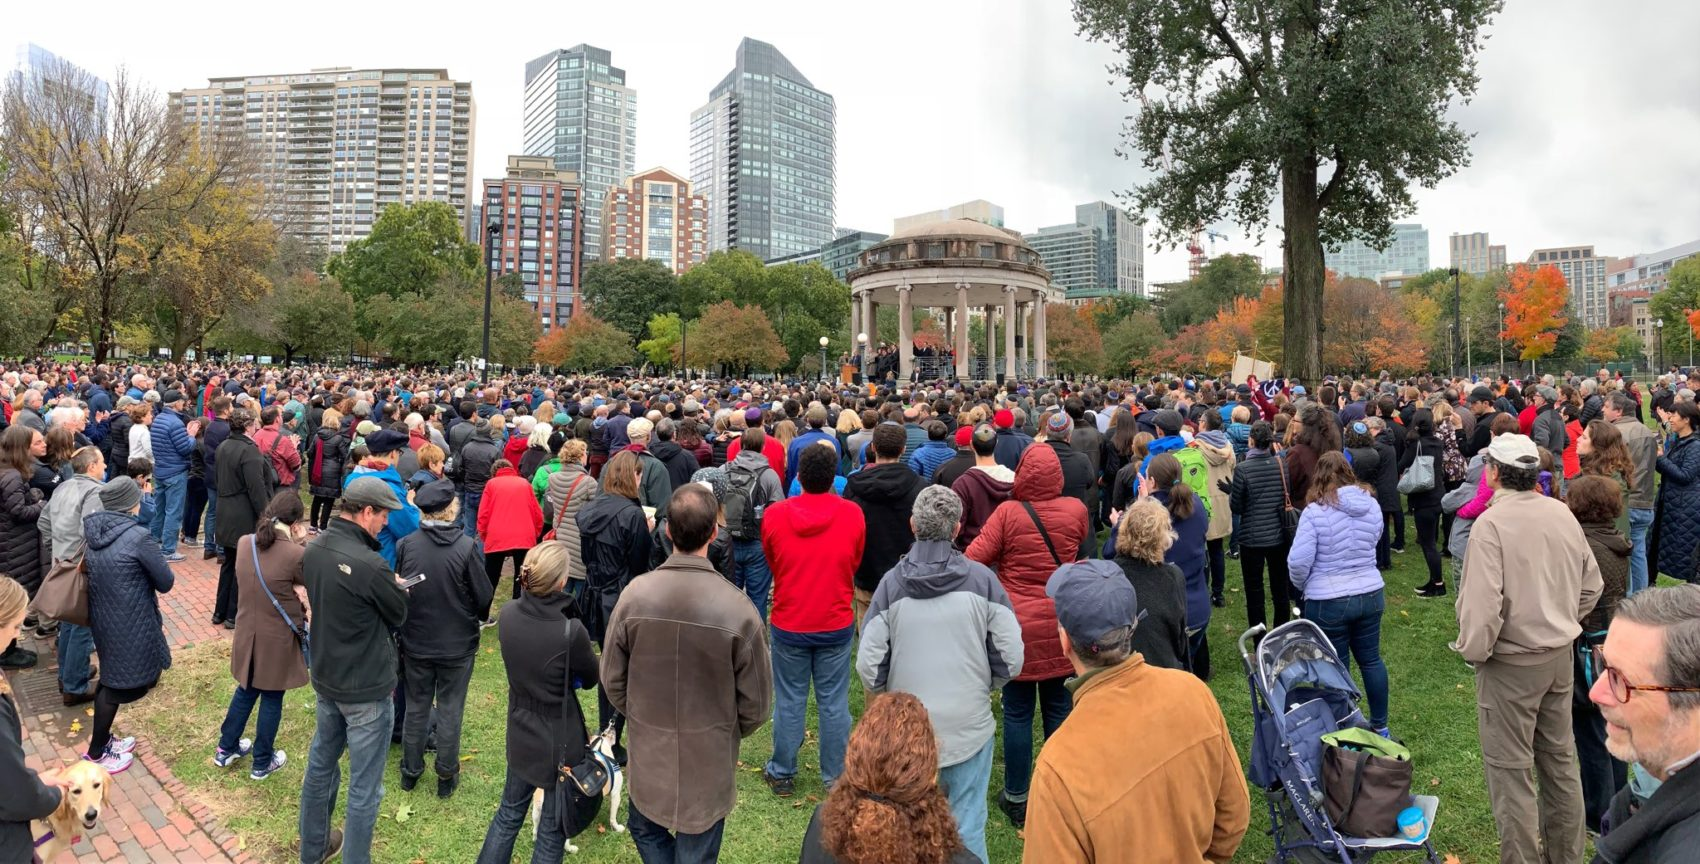 People gather in Boston Common Sunday to condemn anti-Semitism and mourn the victims of the deadly shooting Saturday at a Pittsburgh synagogue. (Simón Ríos/WBUR)